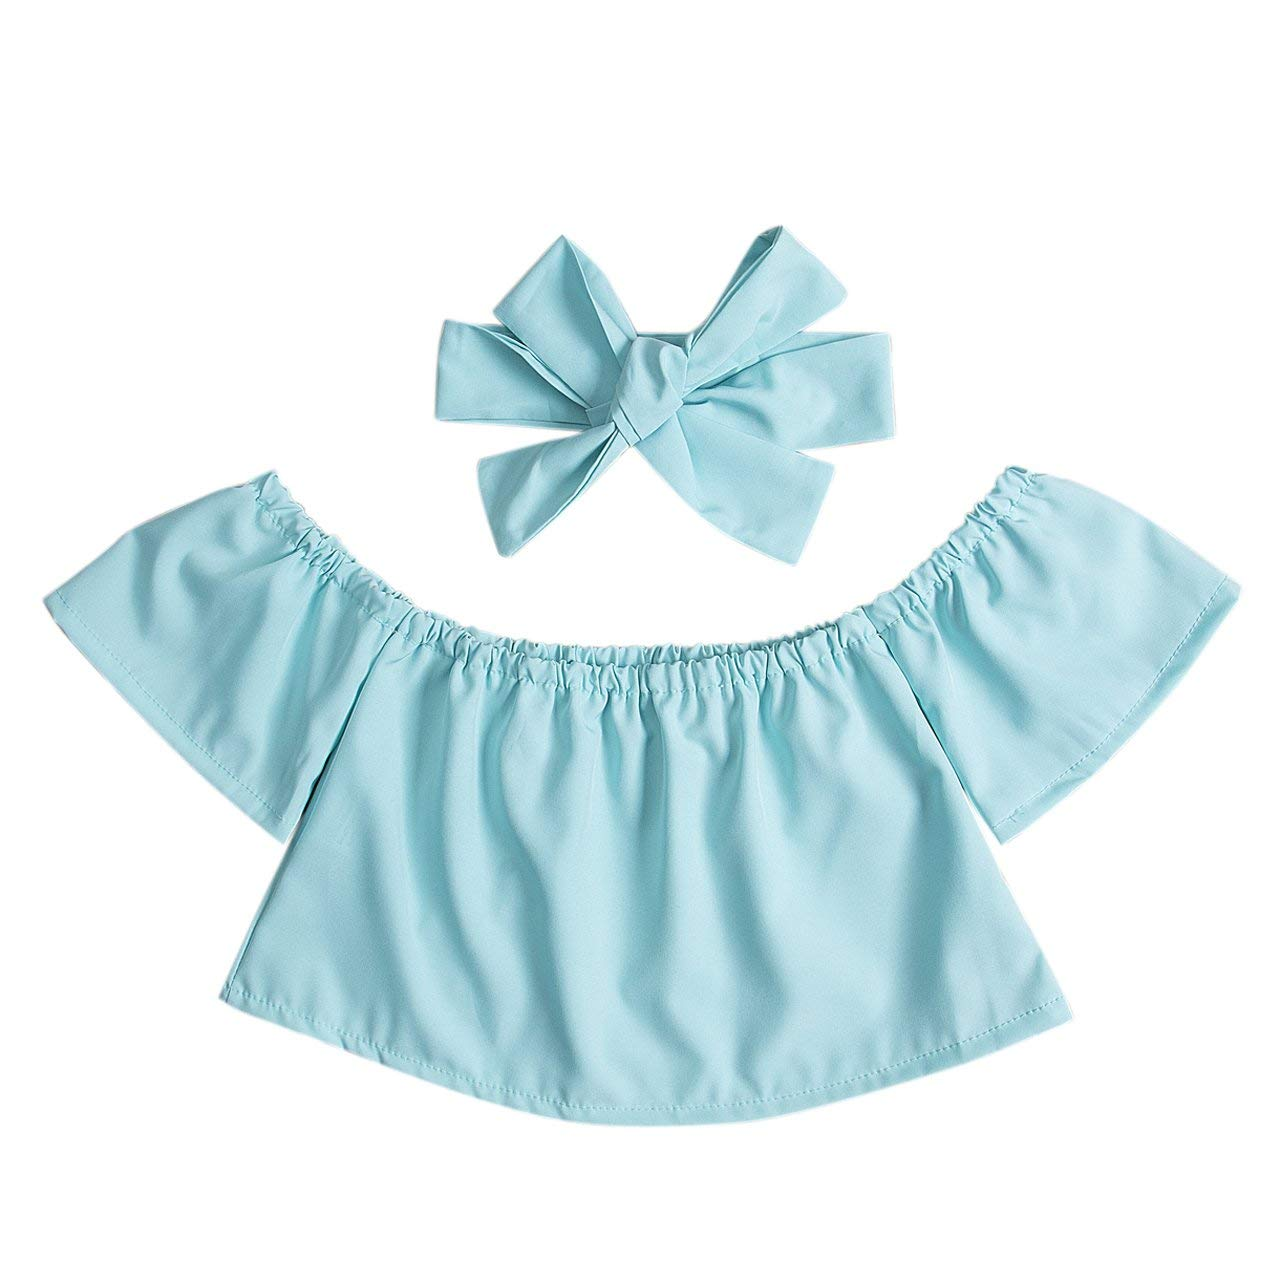 Greatgorgeous Cute Baby Girls Solid Off Shoulder Elastic Fashion Blouse Bow Headband Set 2pcs